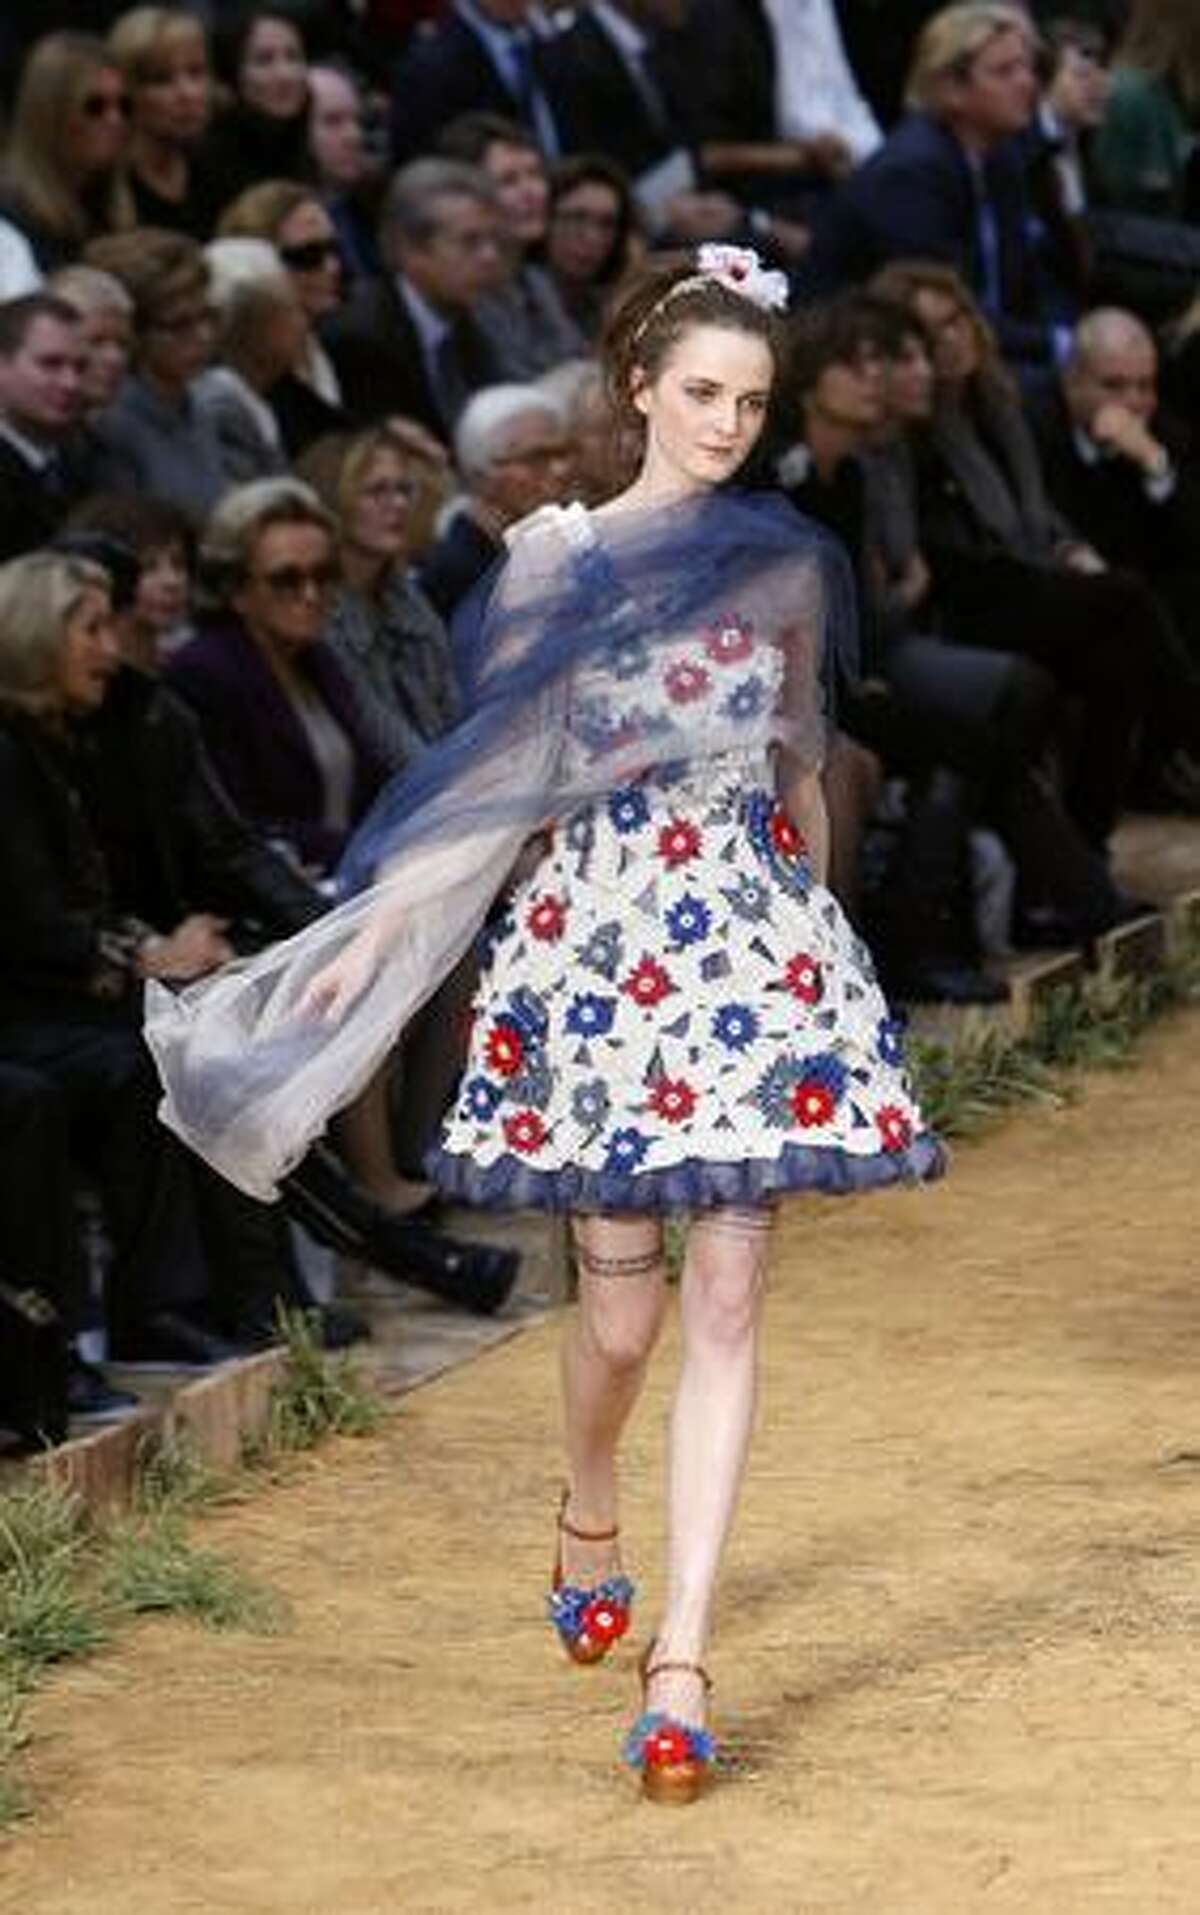 A model presents an outfit by German designer Karl Lagerfeld for Chanel.